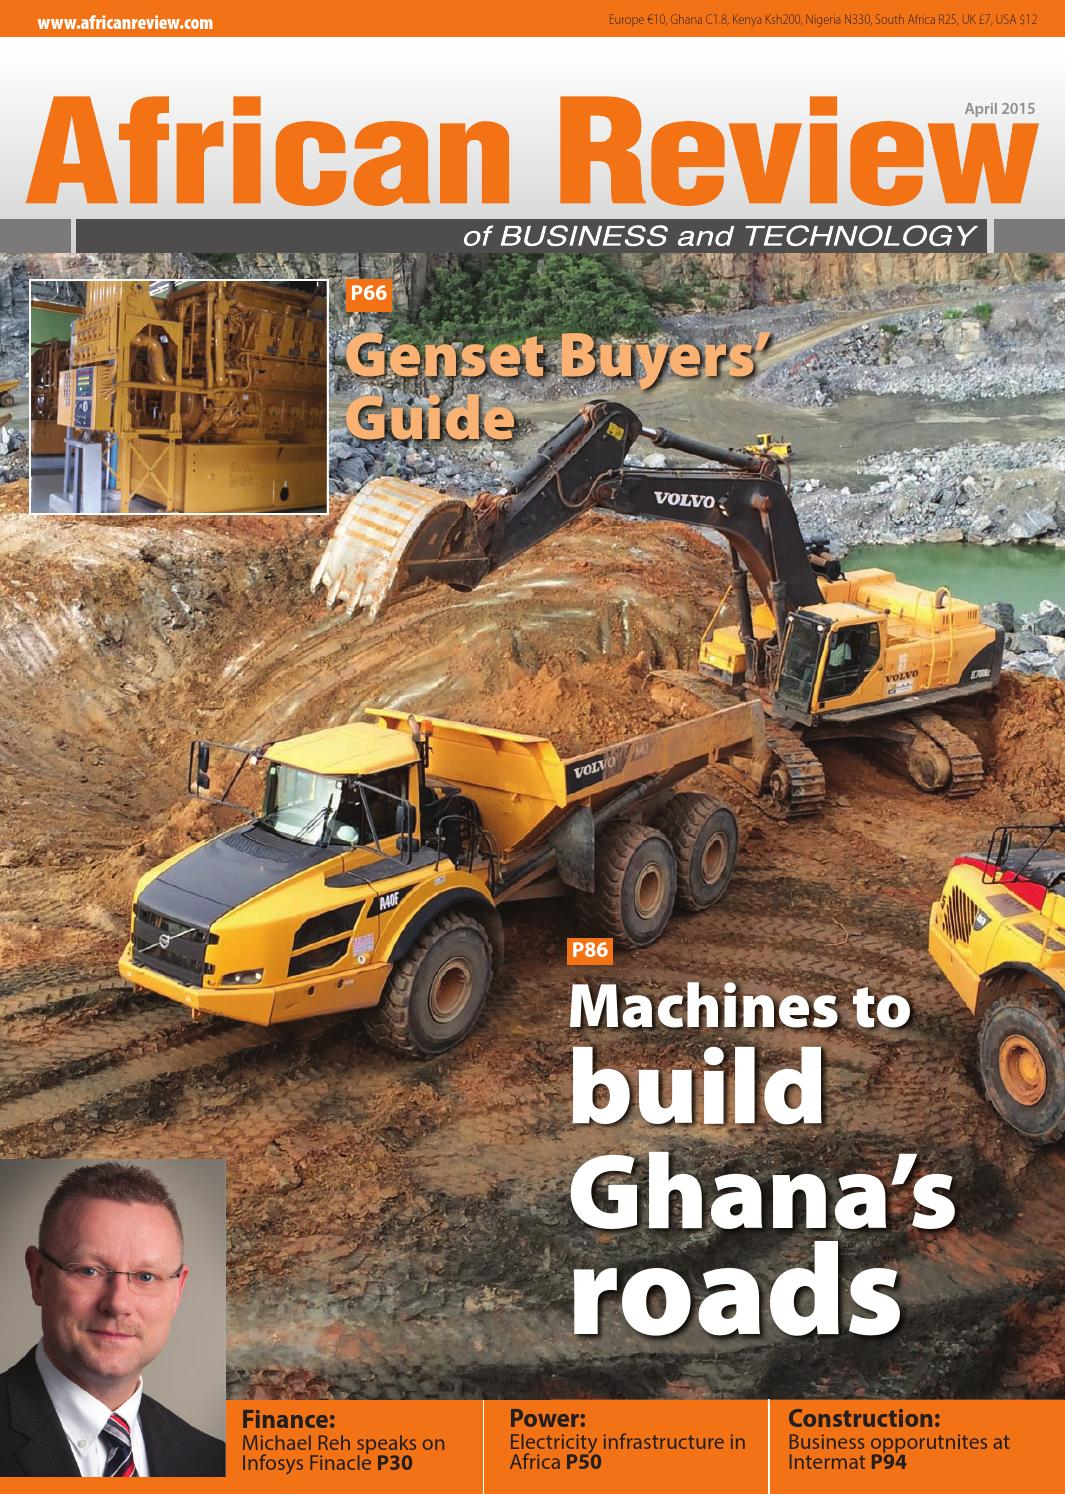 African Review April 2015 By Alain Charles Publishing Issuu Wiring Harness And Mobile Processor Greenstar John Deere